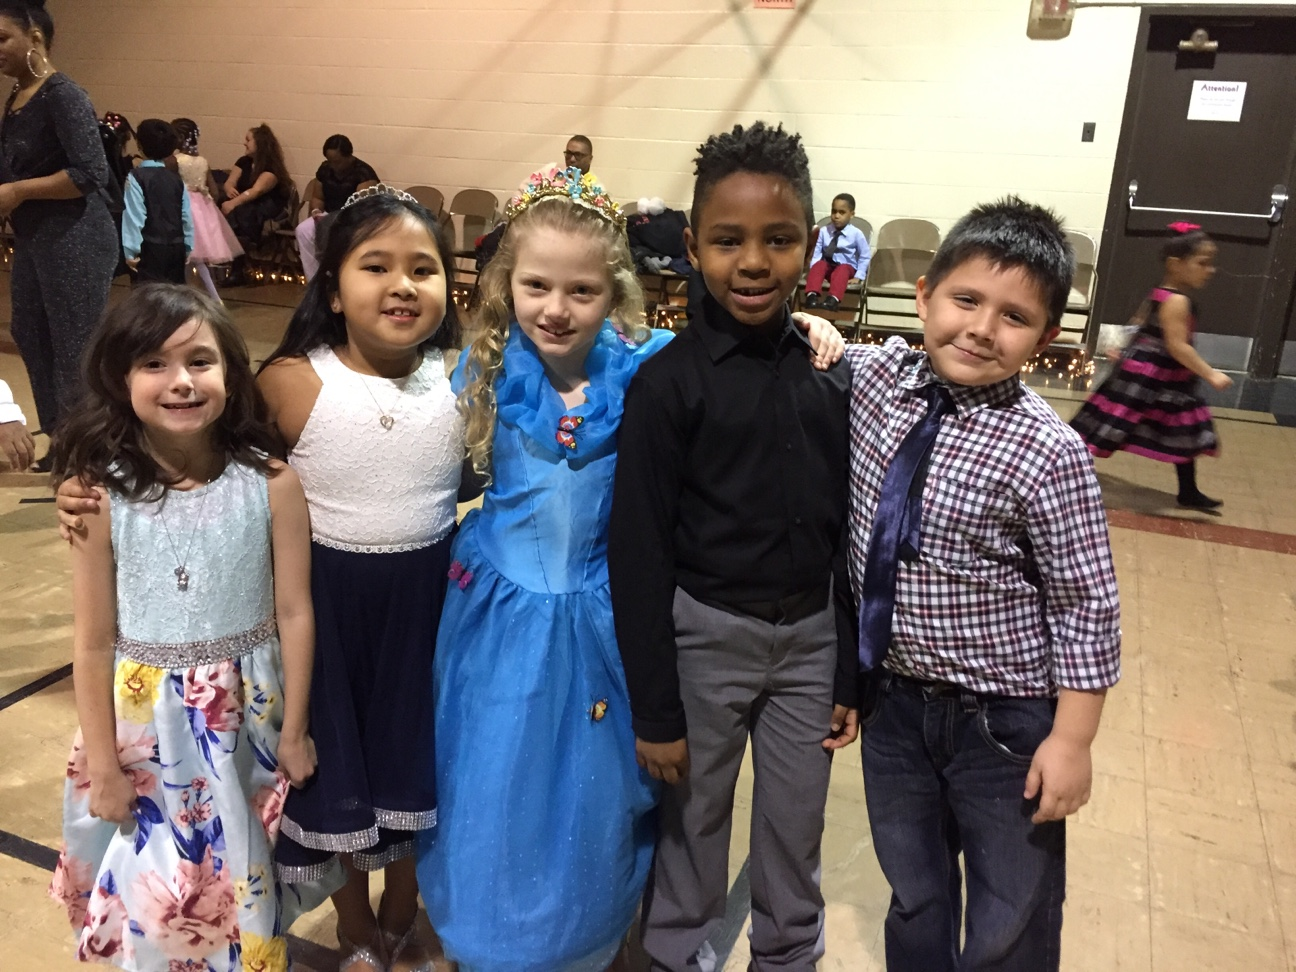 : Winton Woods Primary South first-grade students at the primary prom. Shown (l-r) are Keira Gabbard, Jhemiesha Pullon, Audrey Scott, Elijah Brown, and Andres Ortega.